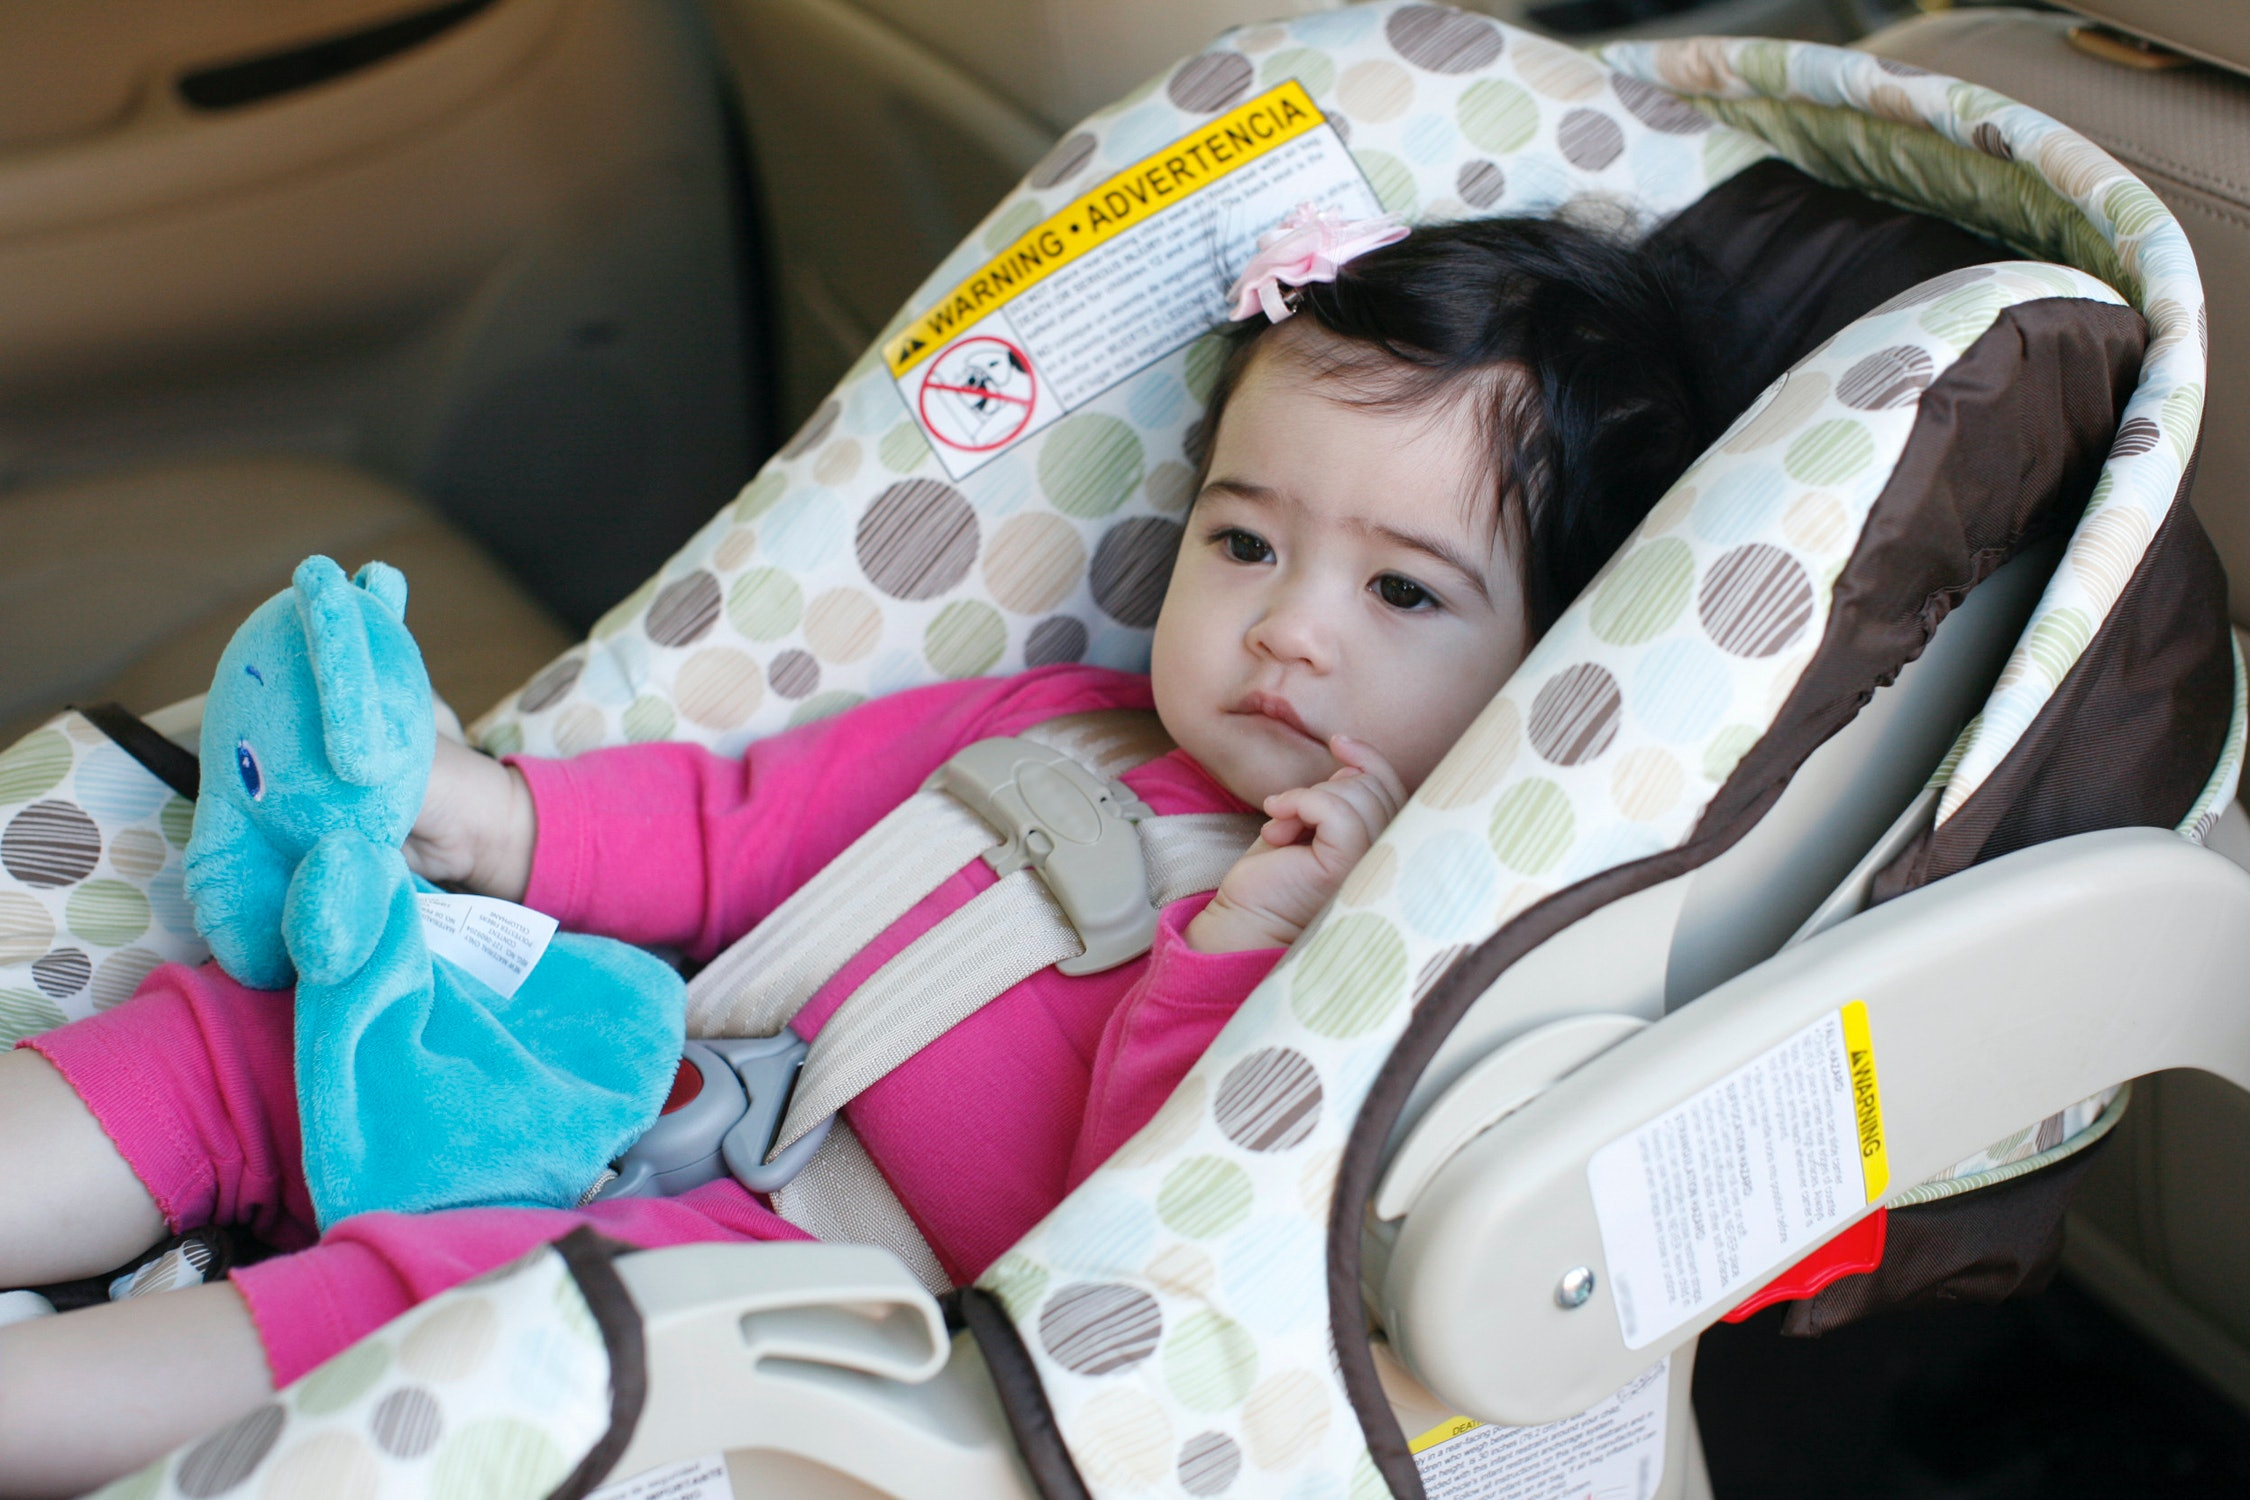 Newborn Car Seat Set Up How Long Should A Baby Be In A Car Seat When Driving There